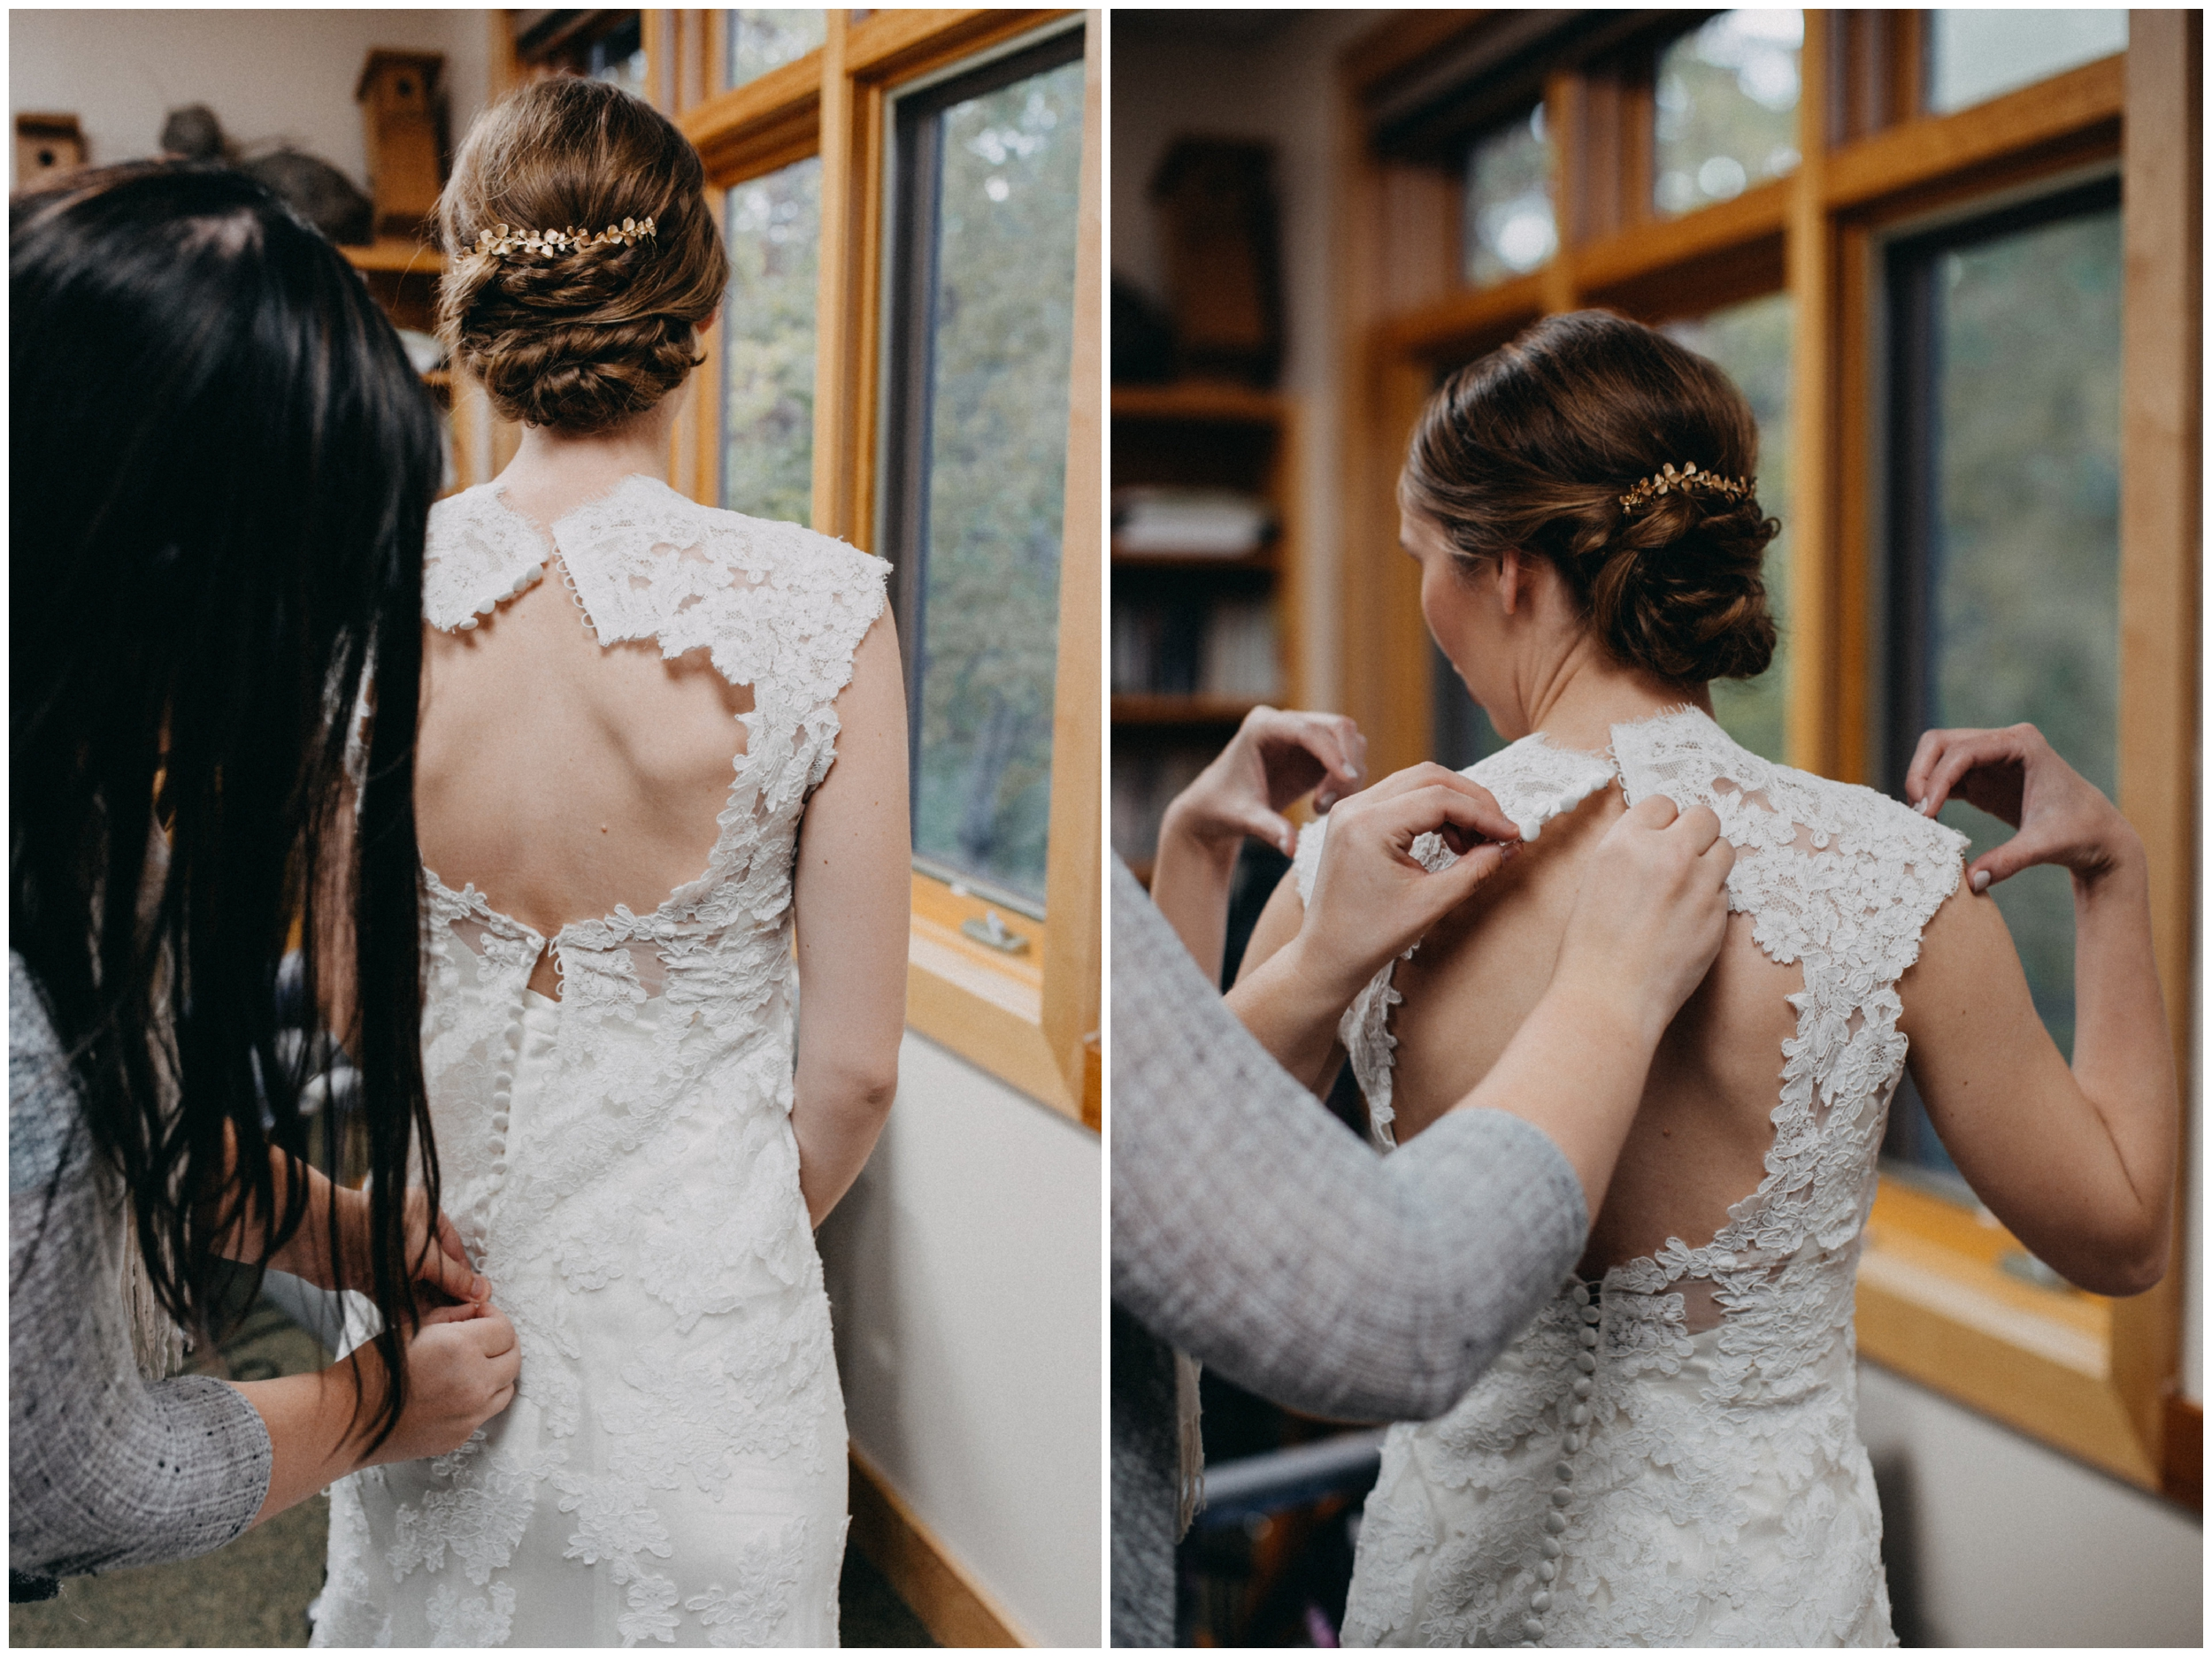 Bride getting into vintage lace wedding dress at the Northland Arboretum